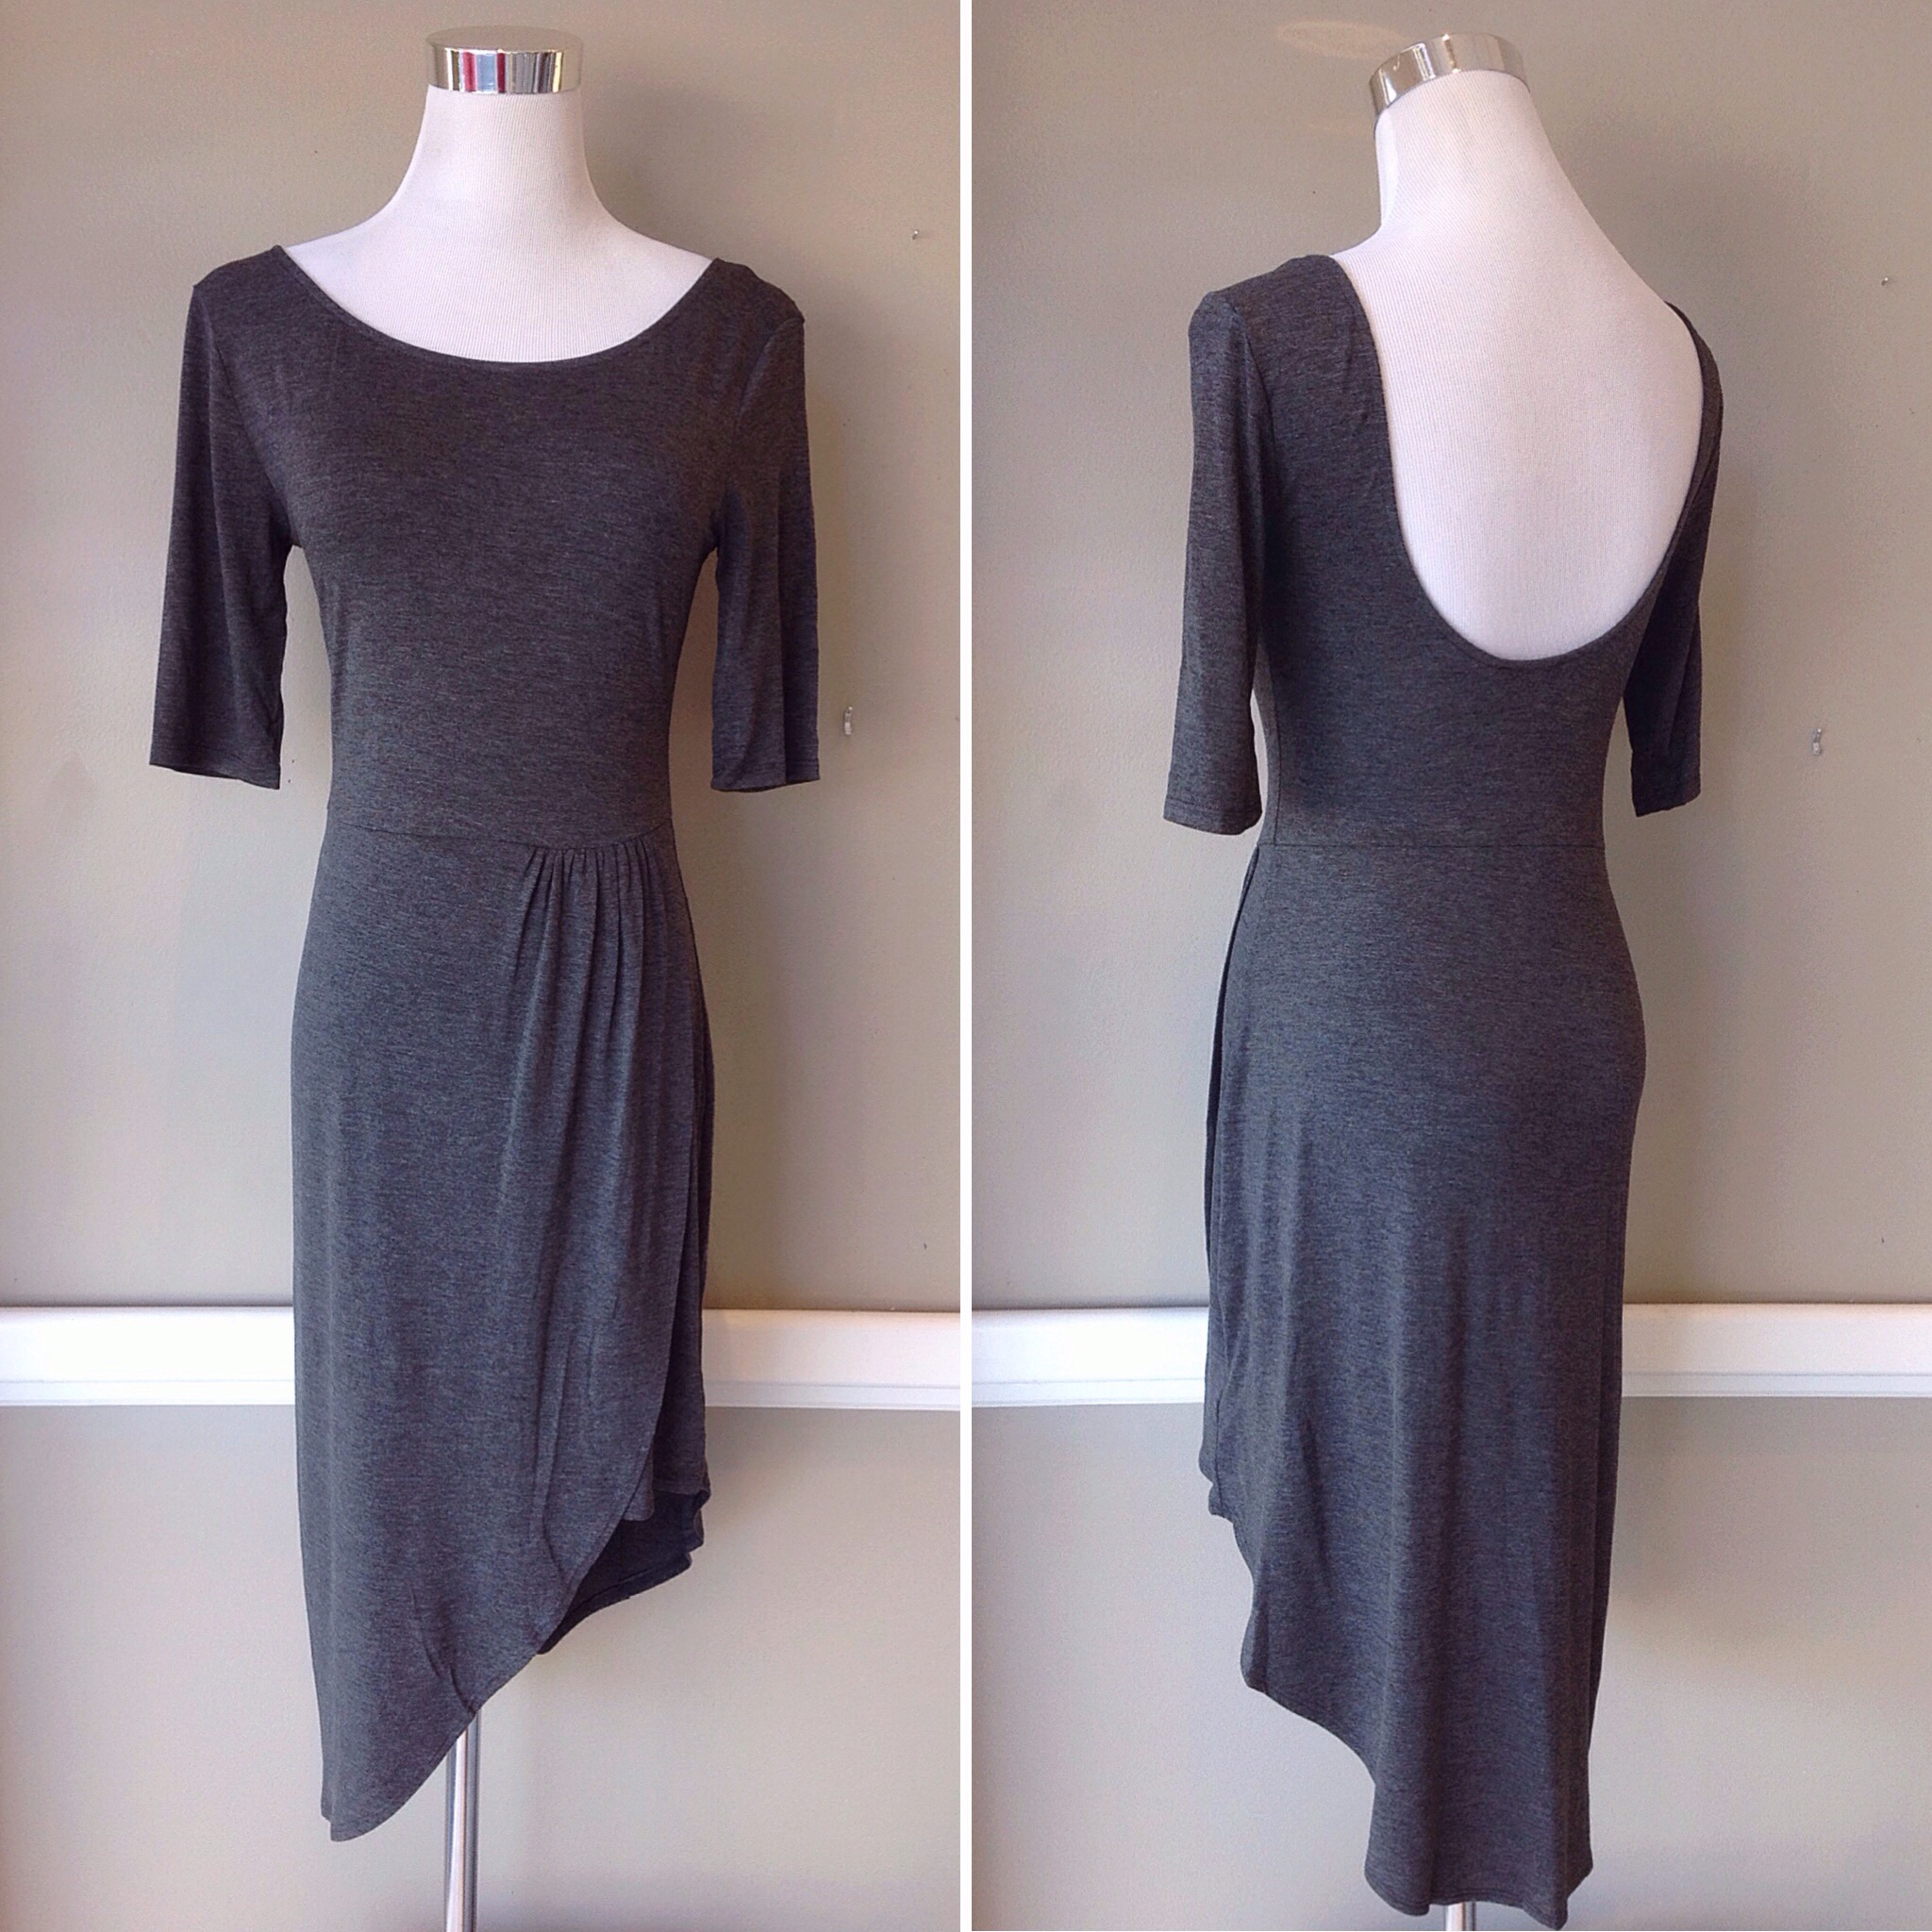 Charcoal knit dress with asymmetrical hem and scoop back, $38